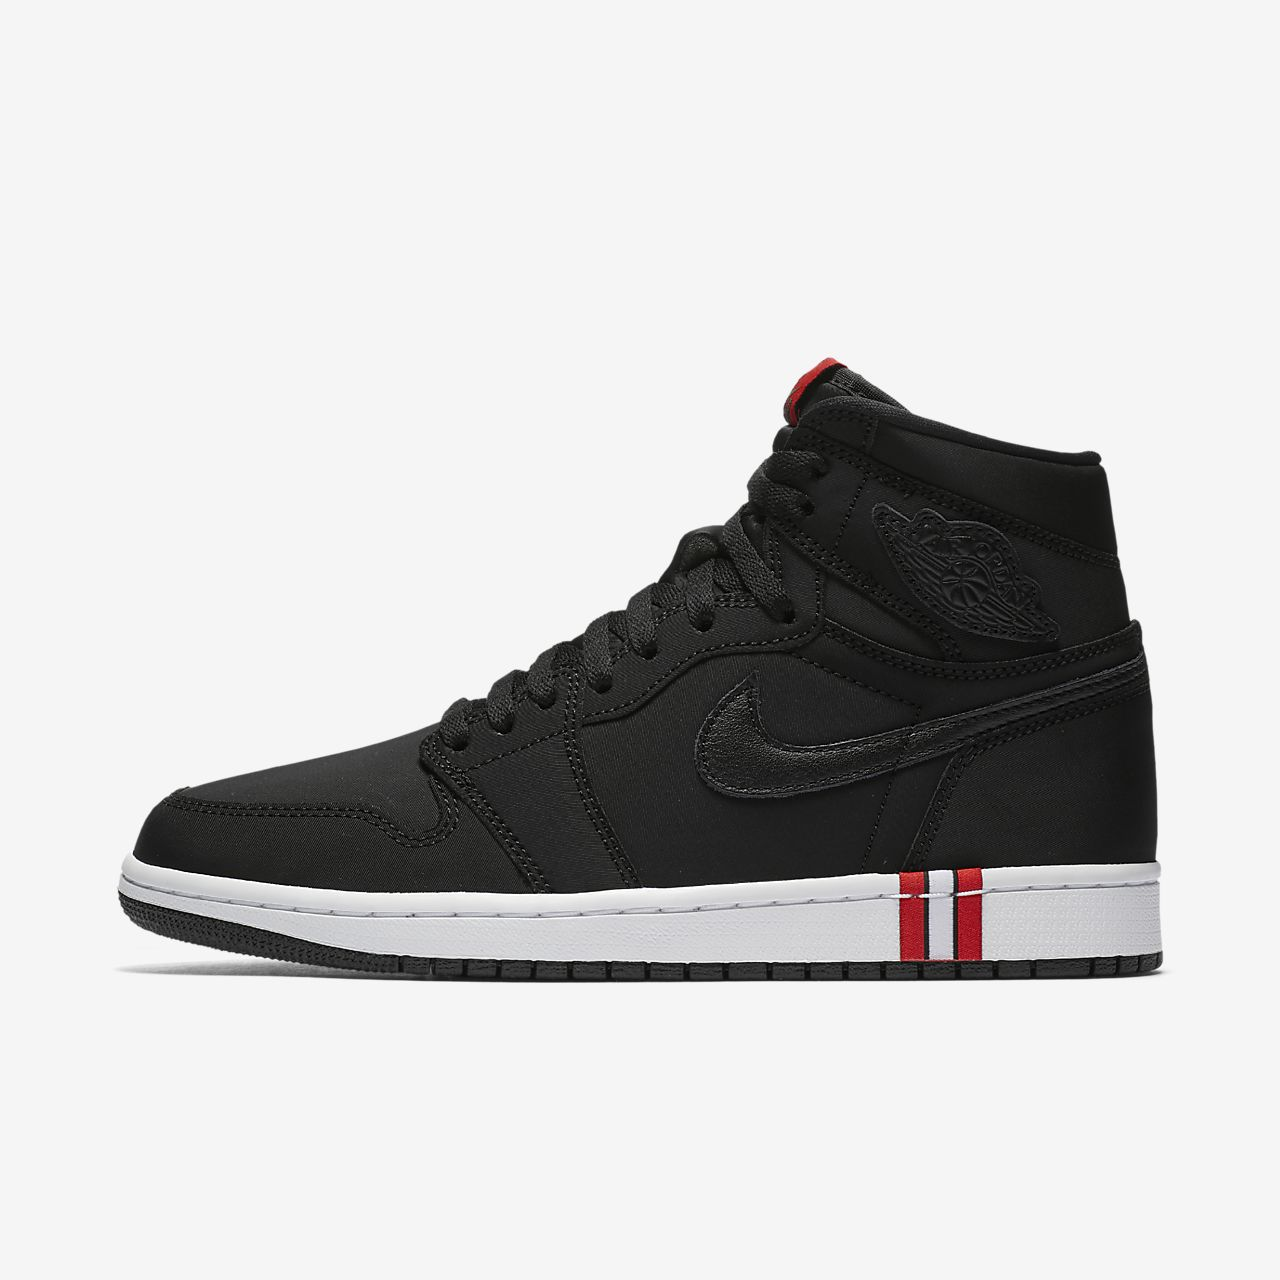 Calzado para hombre Air Jordan 1 Retro High PSG. Nike.com MX 47be20b33eb8a